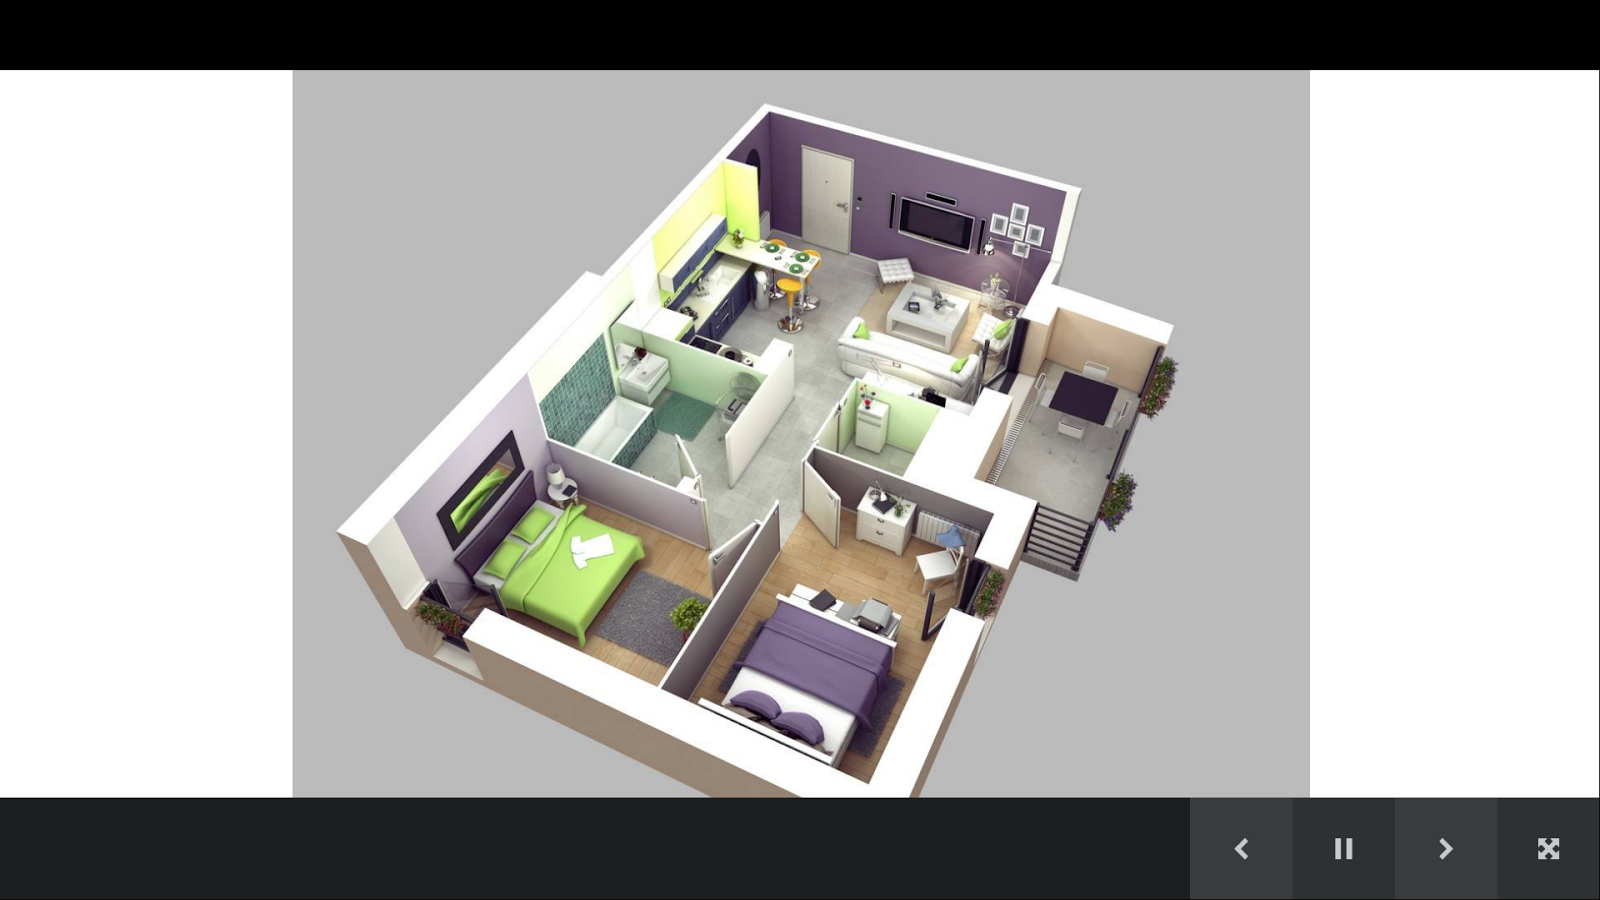 3d house plans 1 2 apk download android lifestyle apps - Virtual room designer app ...